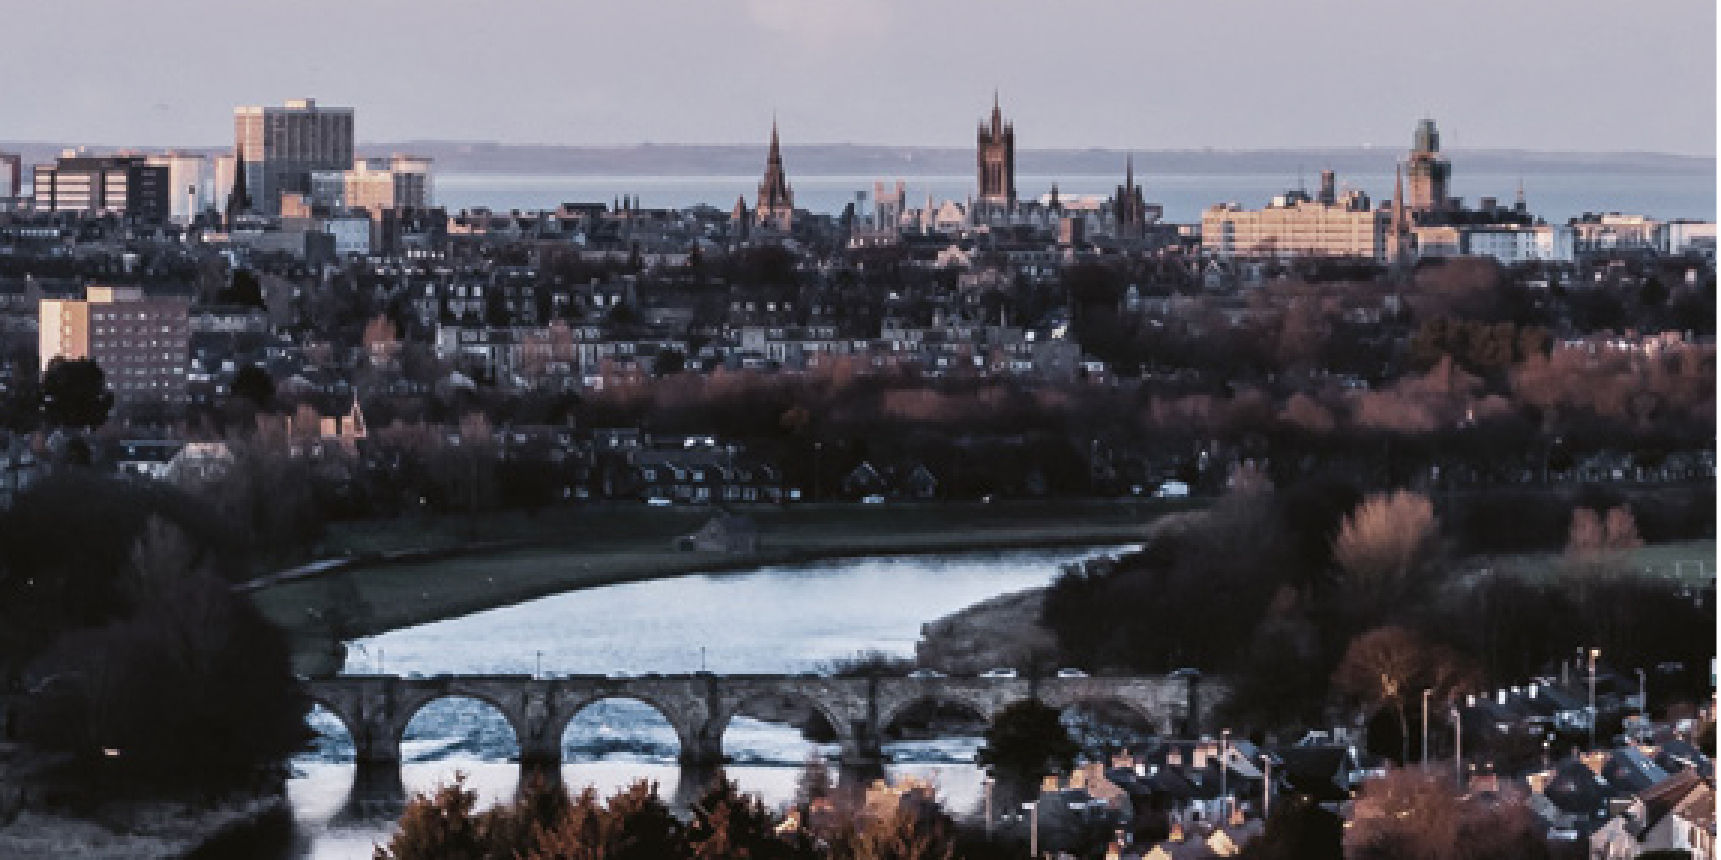 City of Aberdeen, Scotland